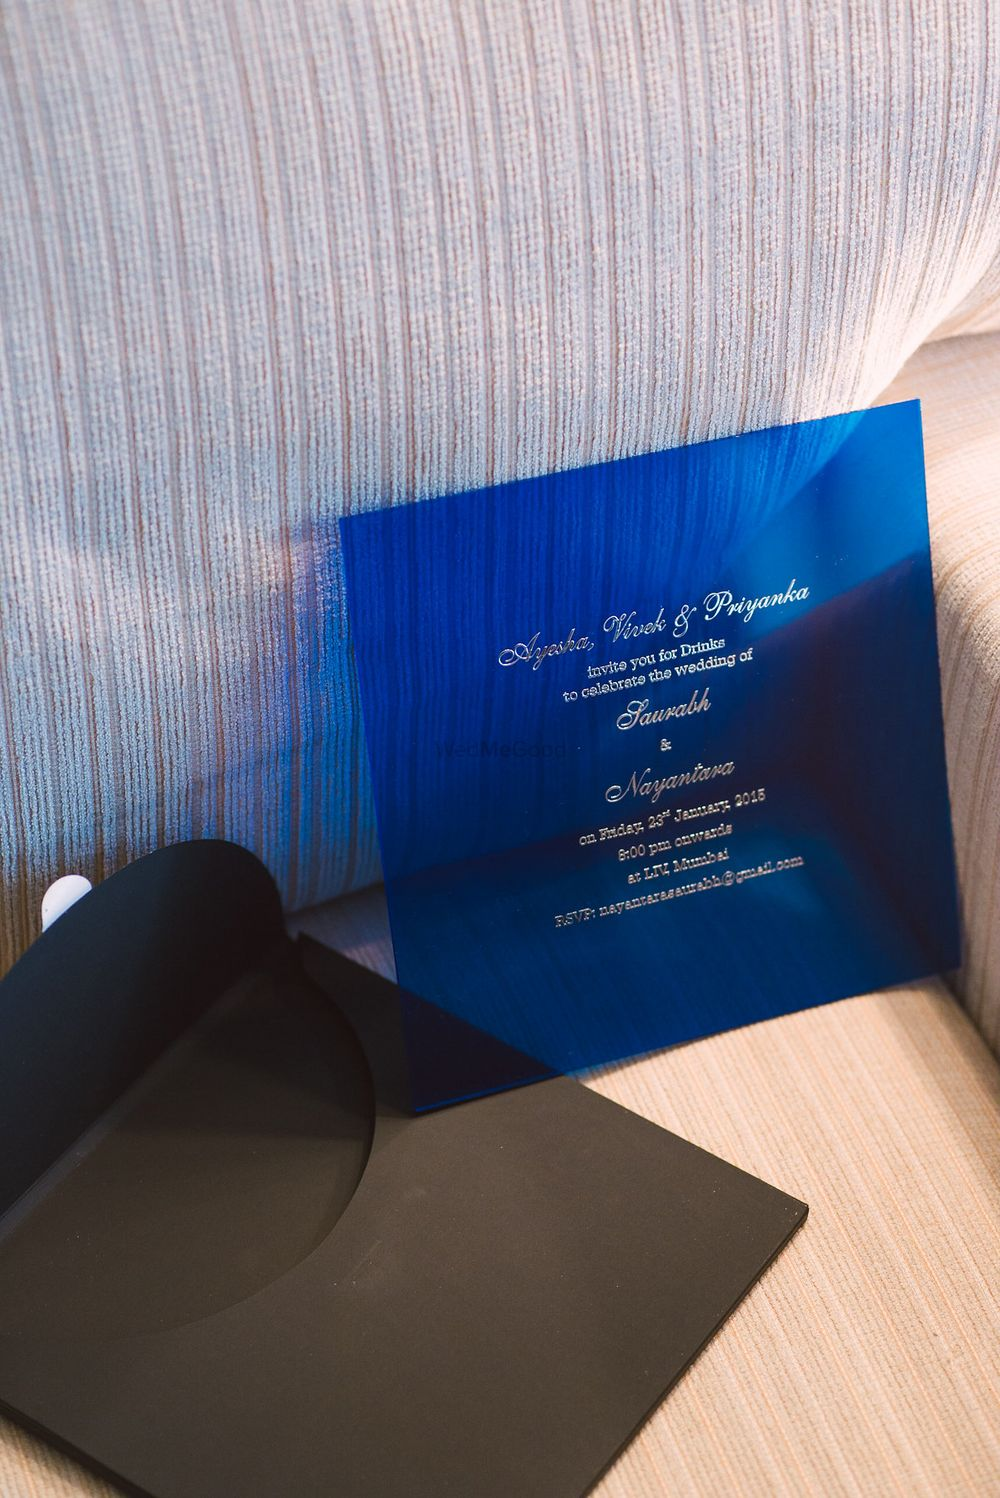 Photo of blue invitation card